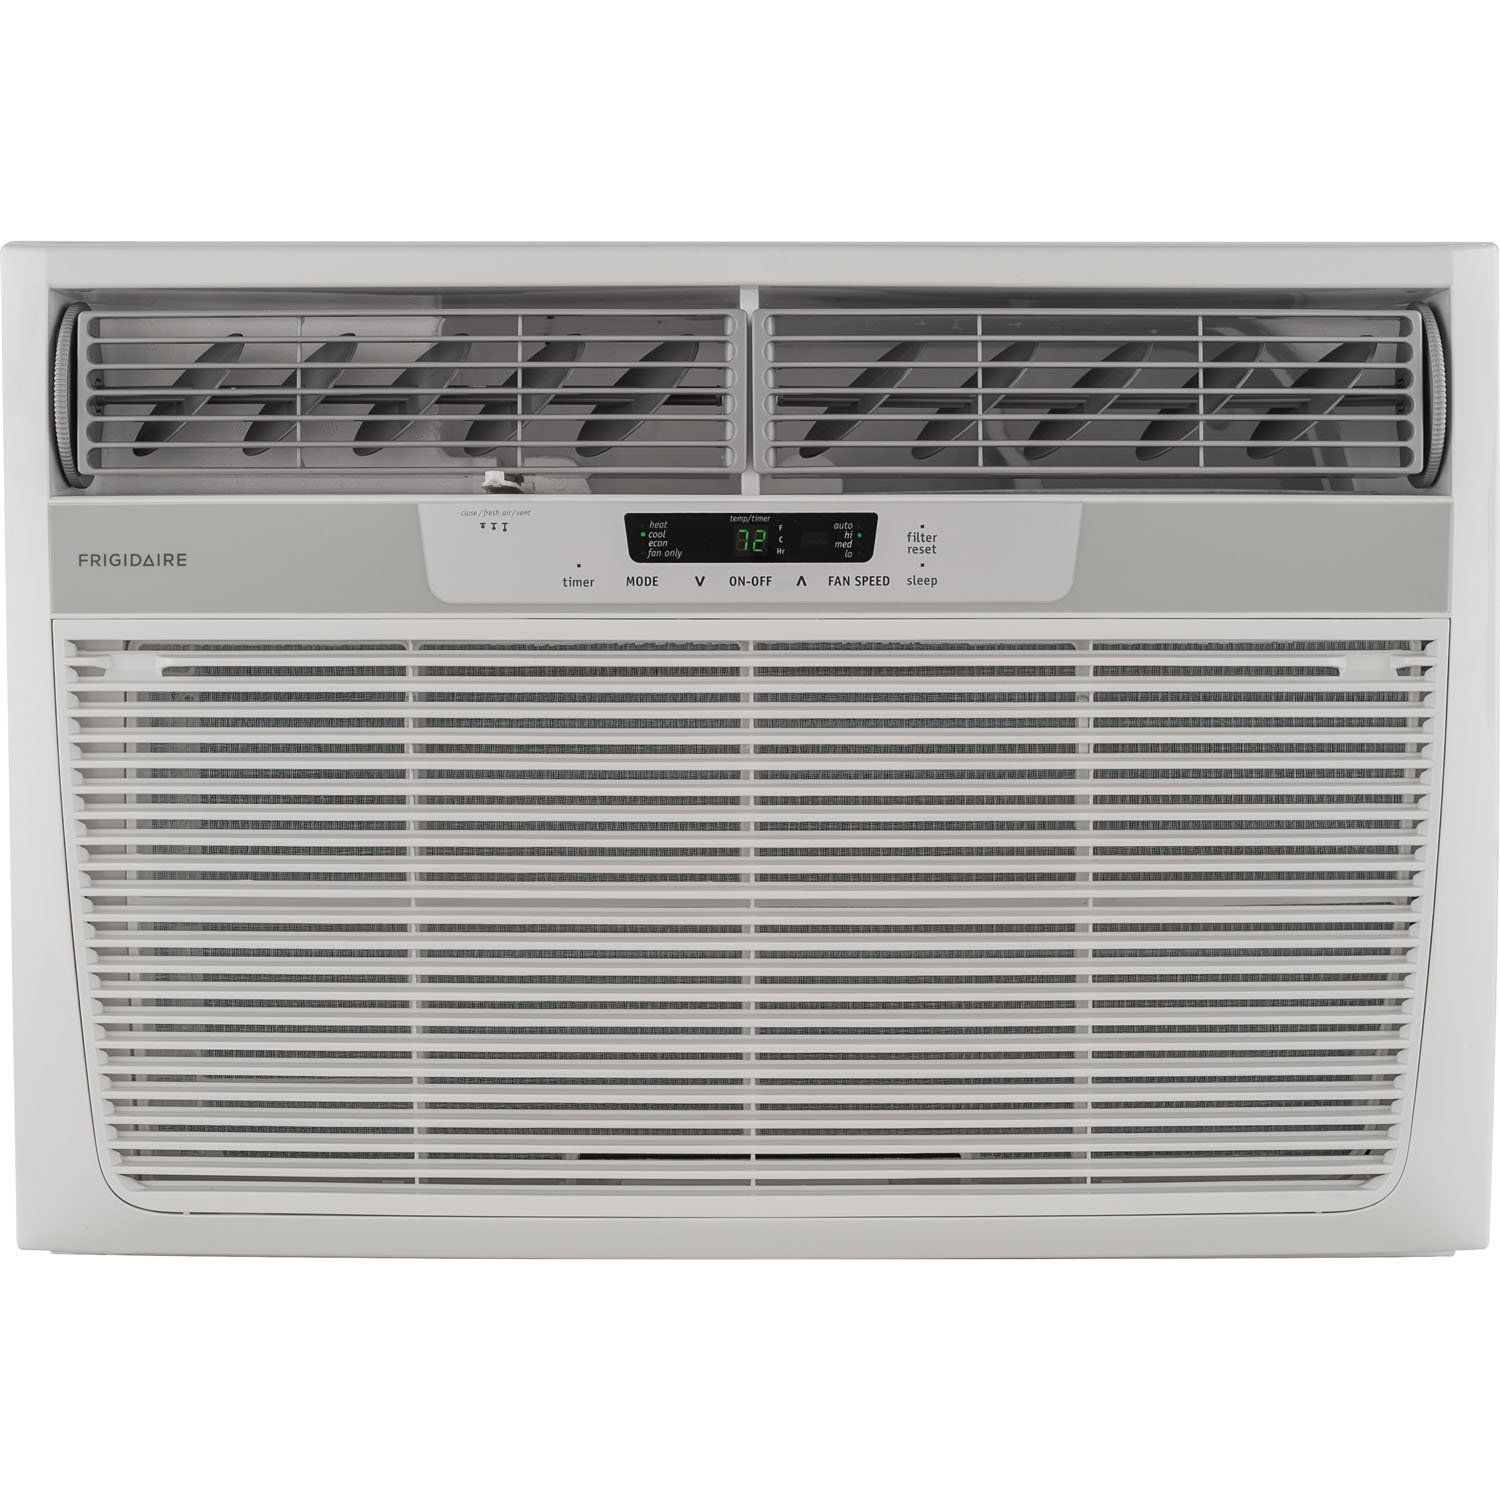 25000 BTU Heat/Cool Window Air Conditioner, Electronic Controls, 230V